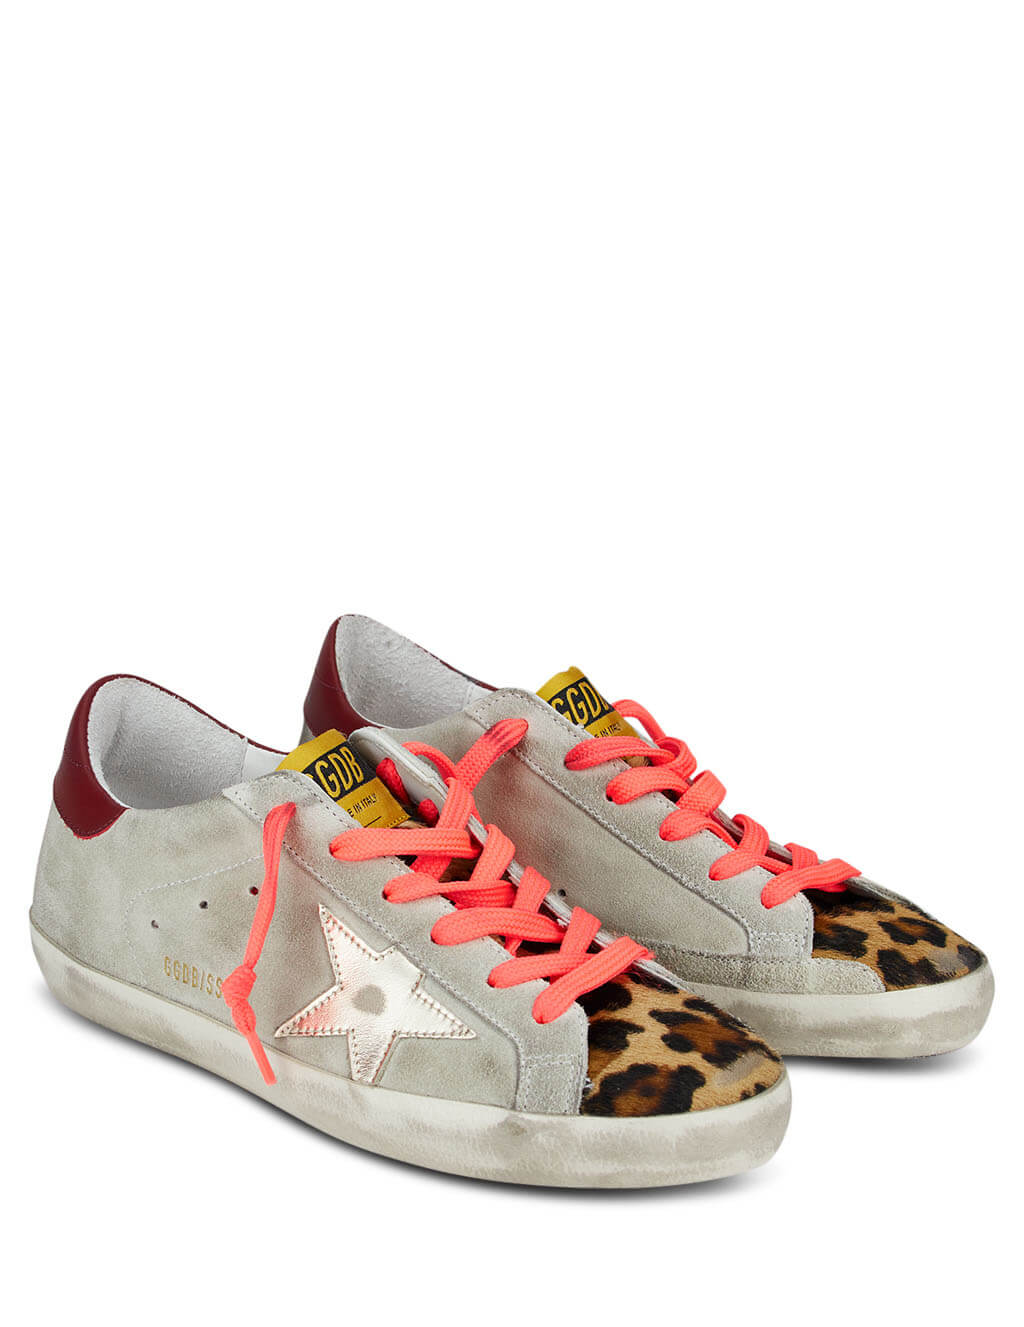 Women's Beige Suede Golden Goose Superstar Sneakers GWF00101.F000192.80216